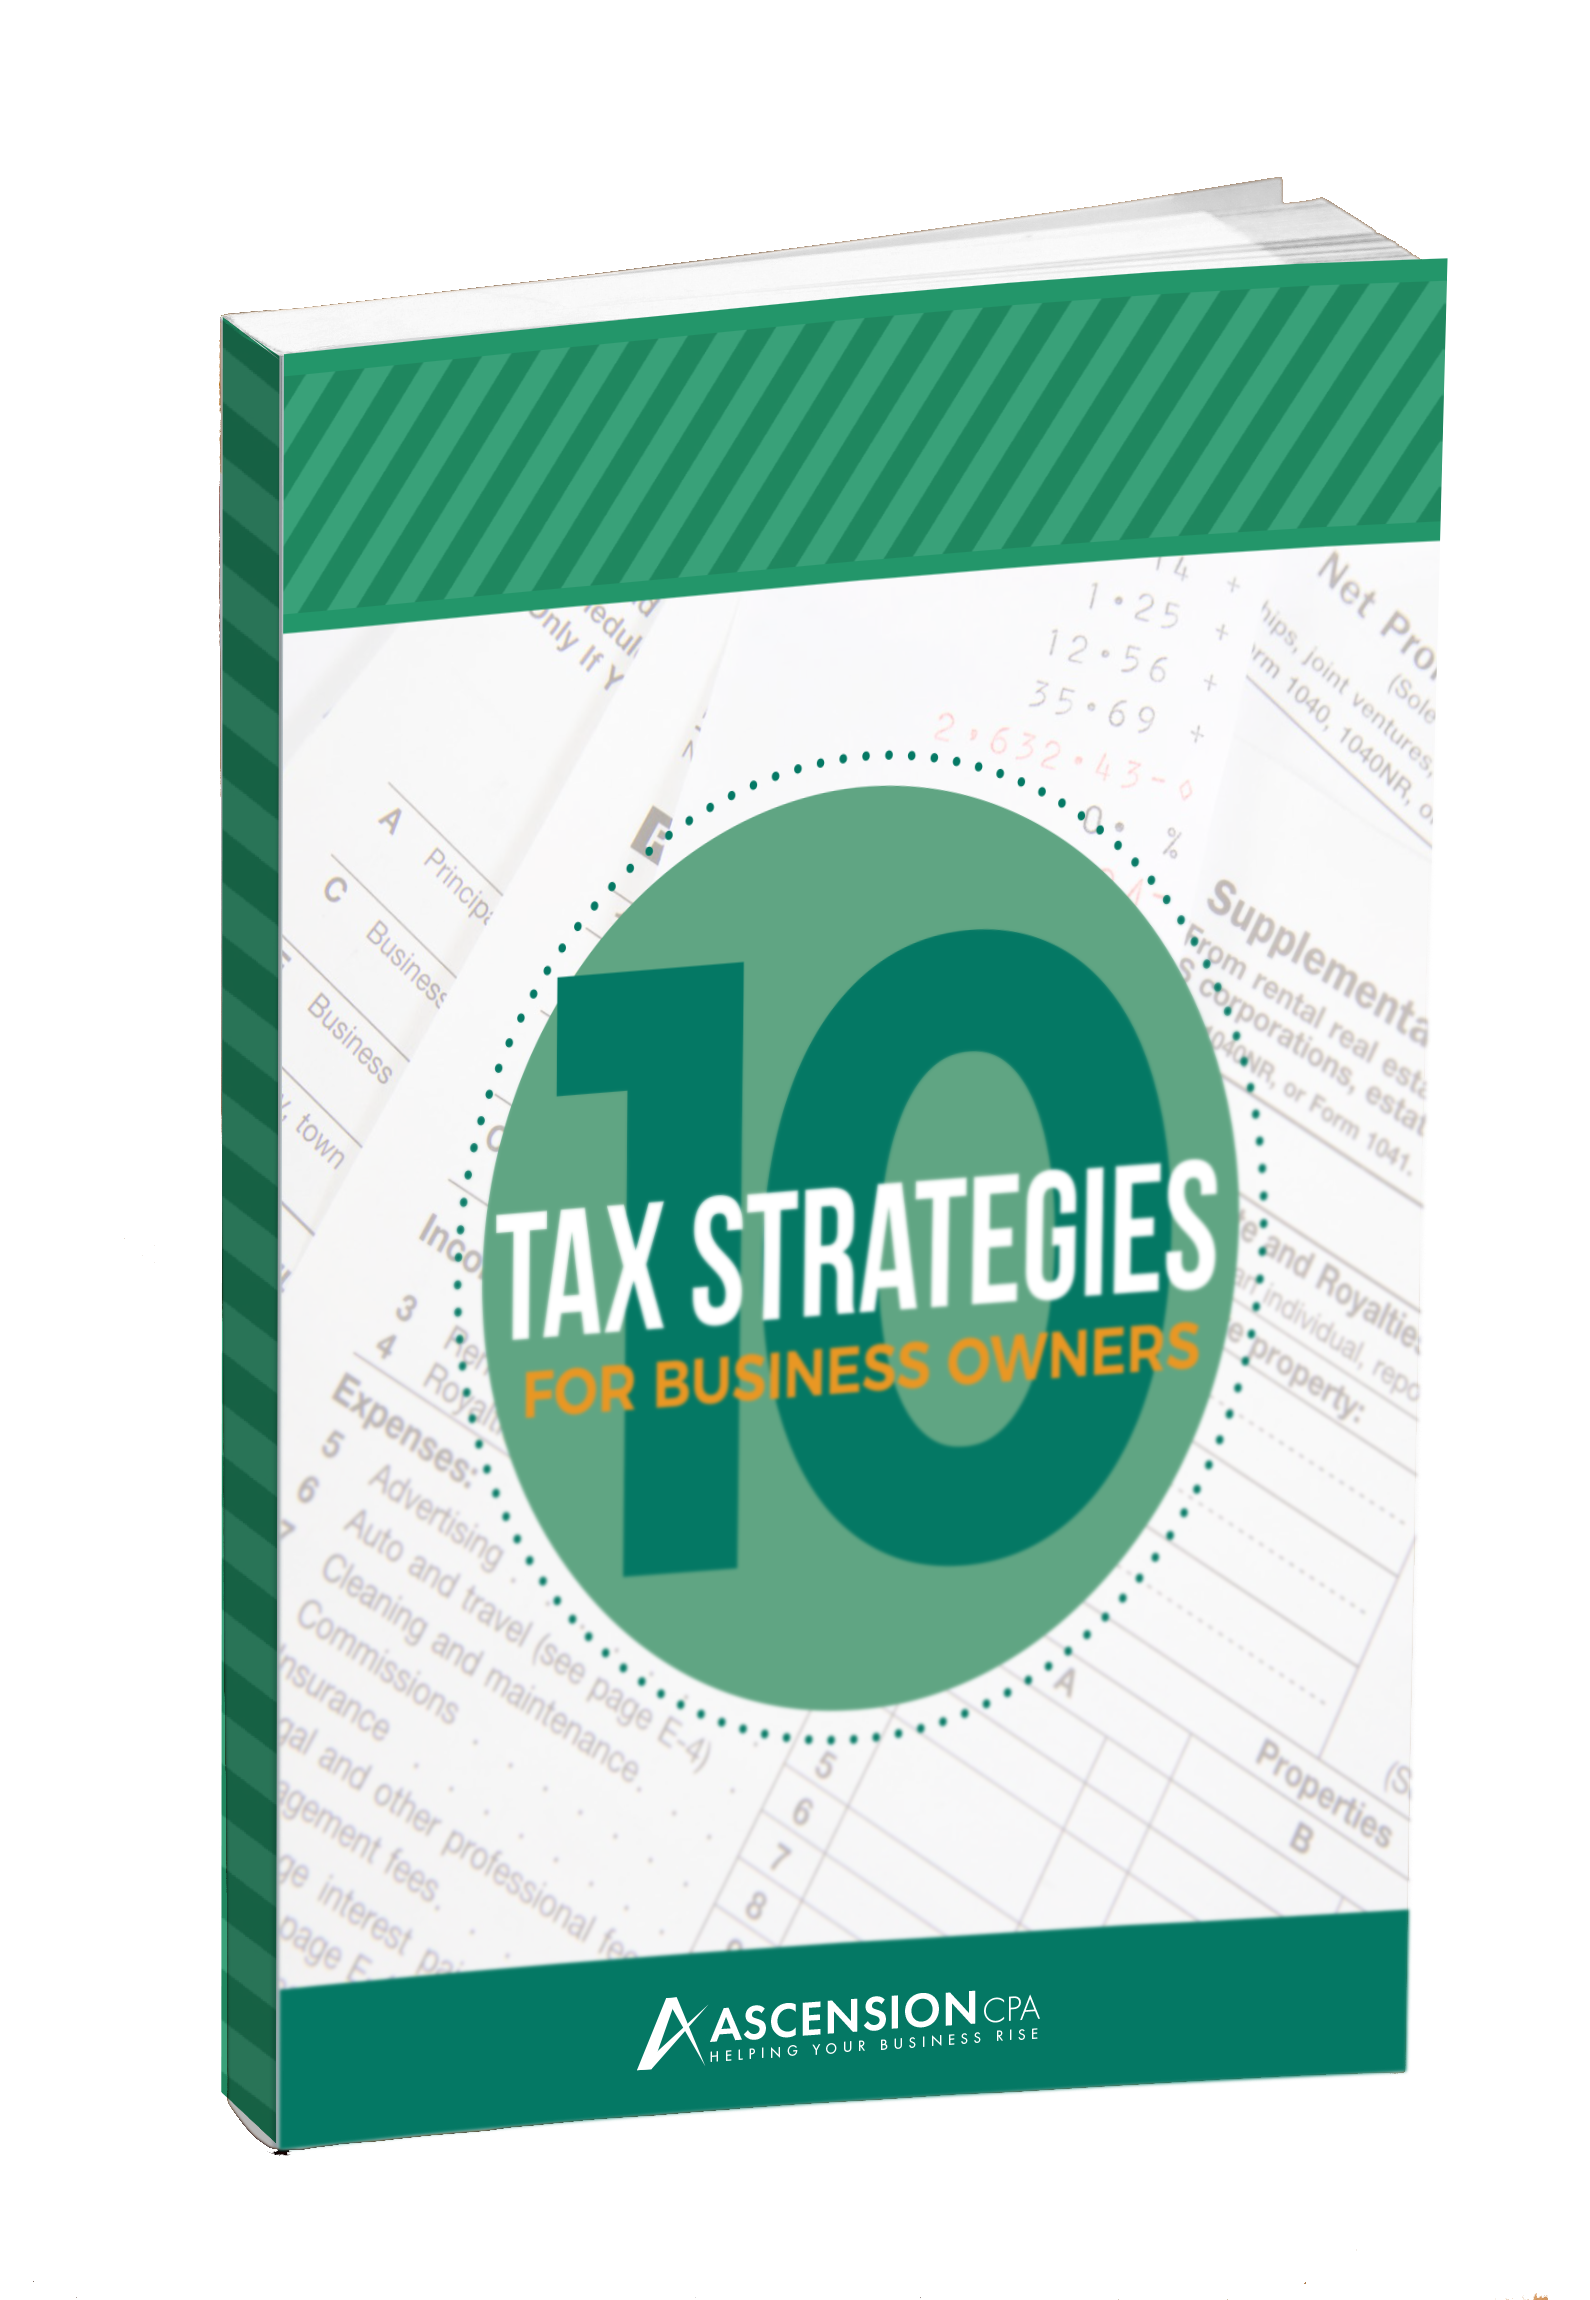 10 Tax Strategies Book Cover